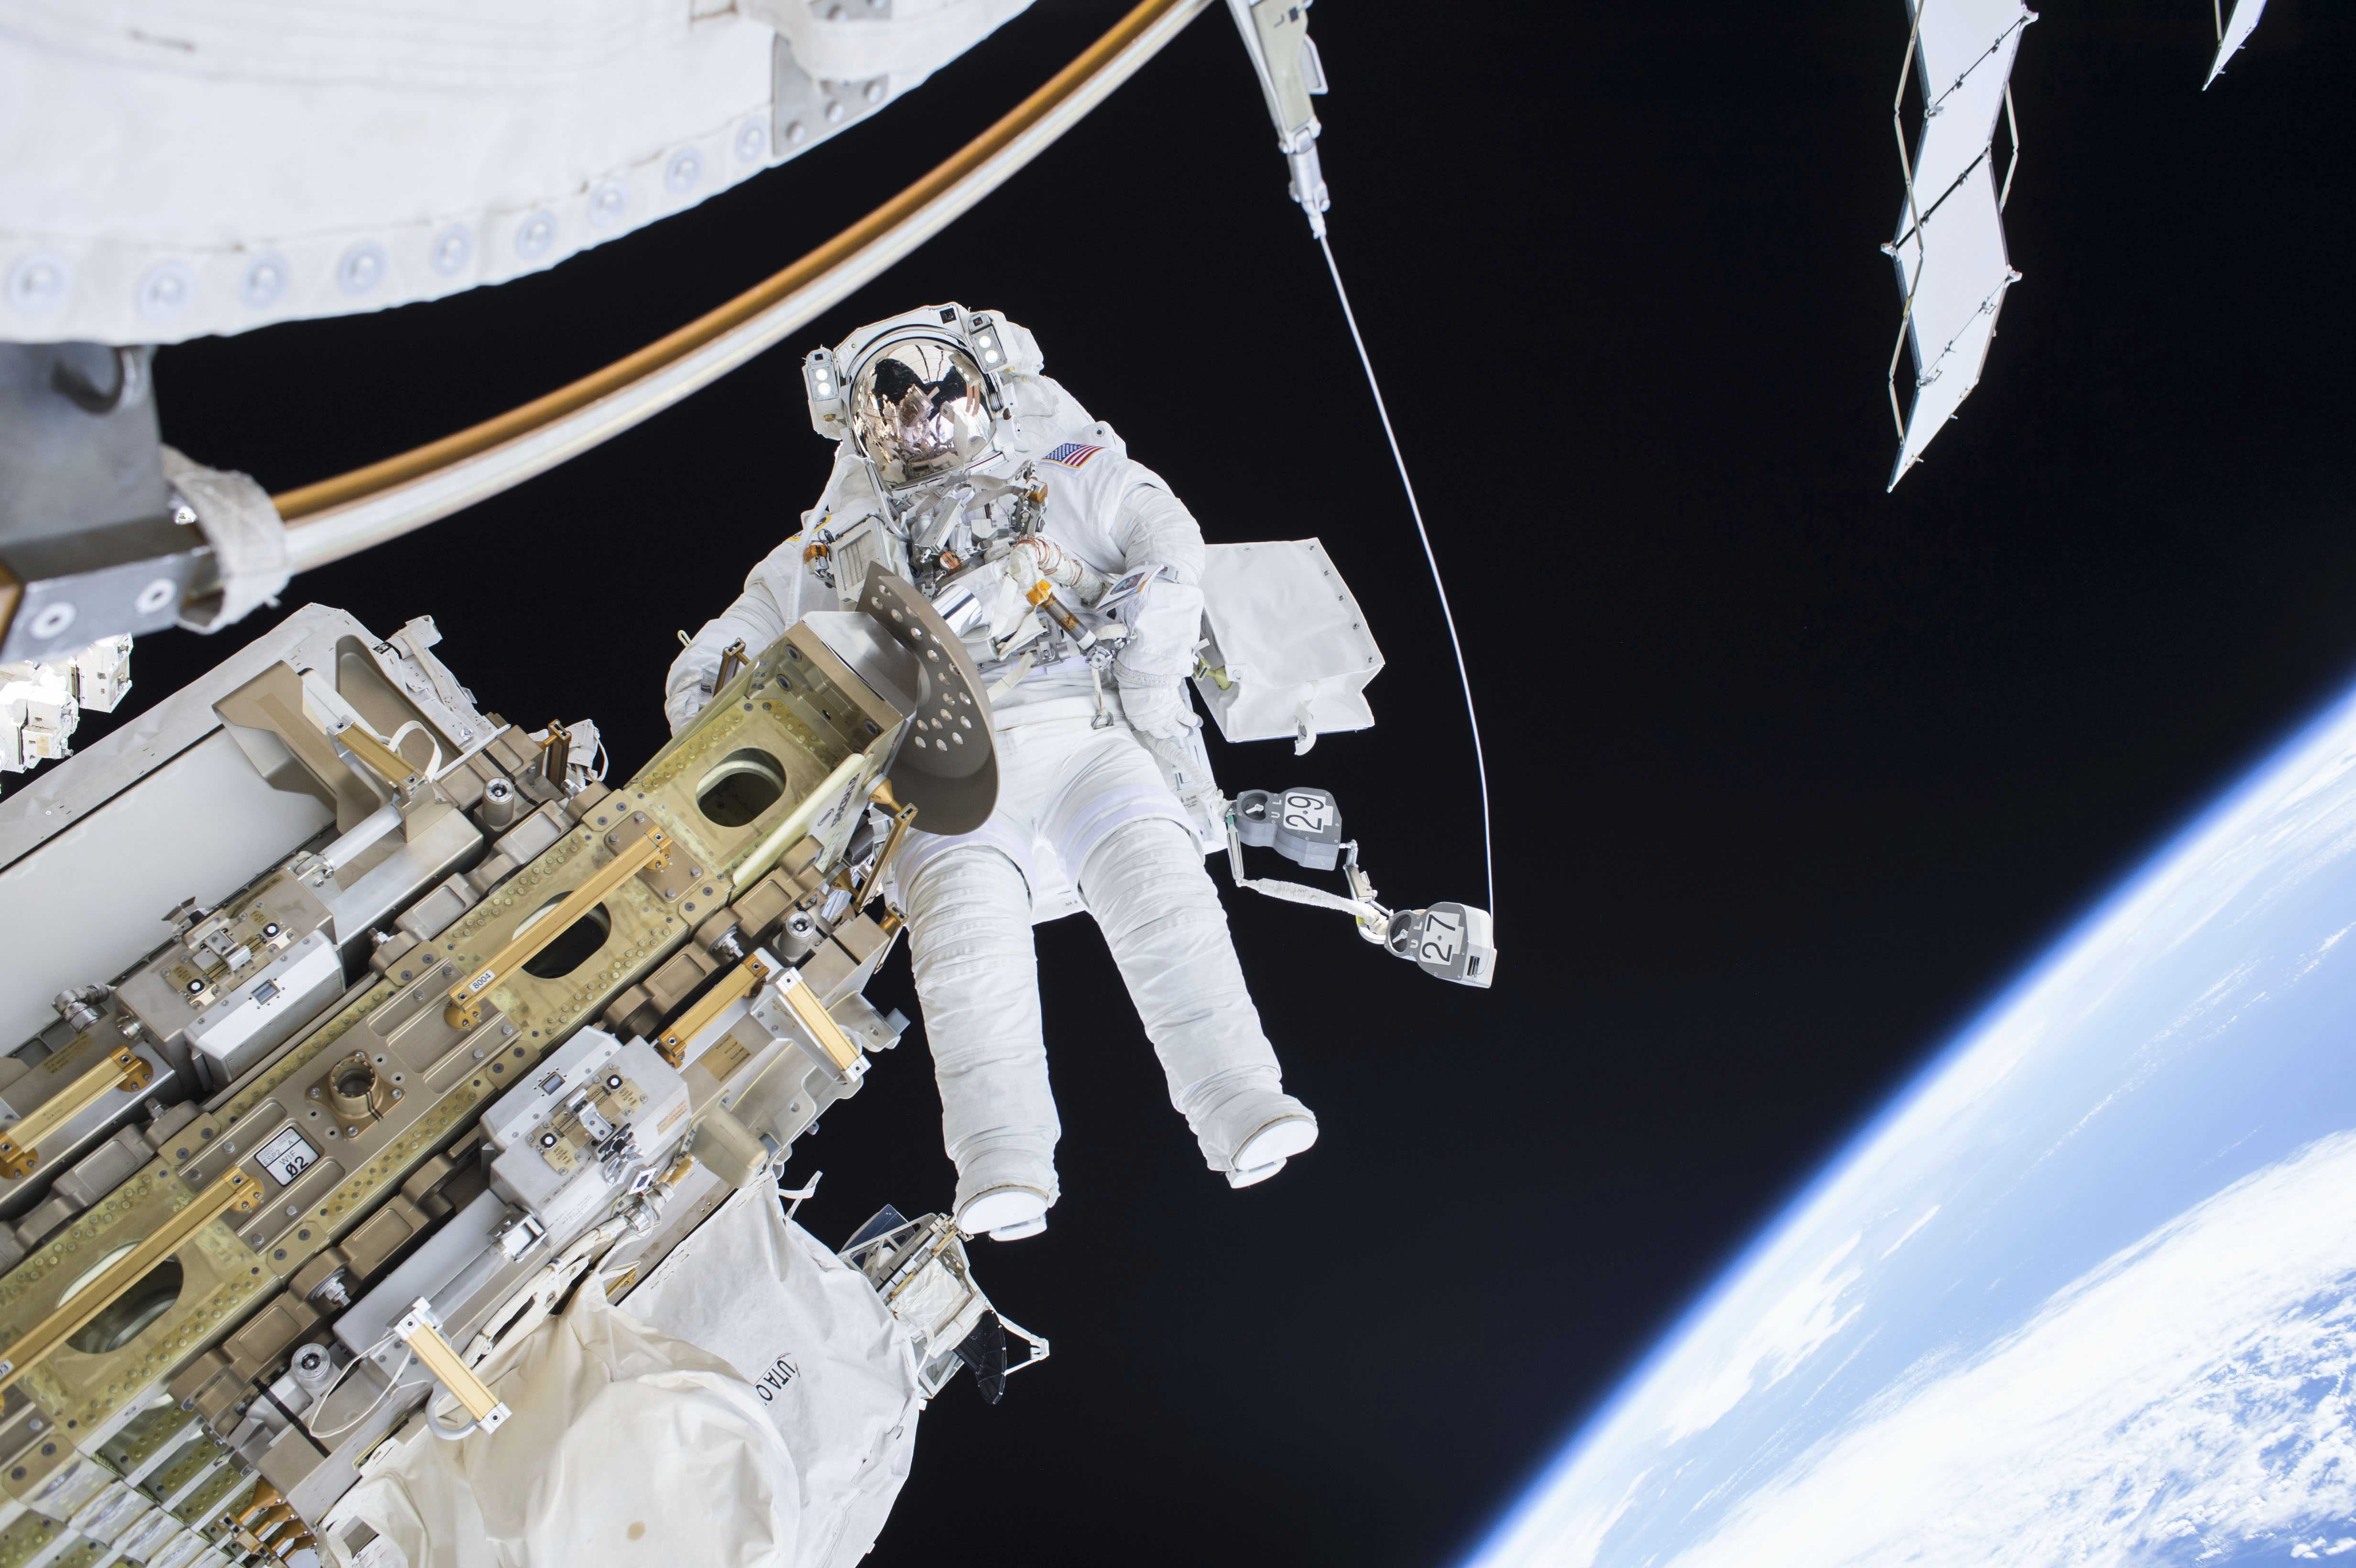 Expedition 46 Flight Engineer Tim Kopra performs a spacewalk outside the International Space Station in this December 21, 2015. Photo: Reuters